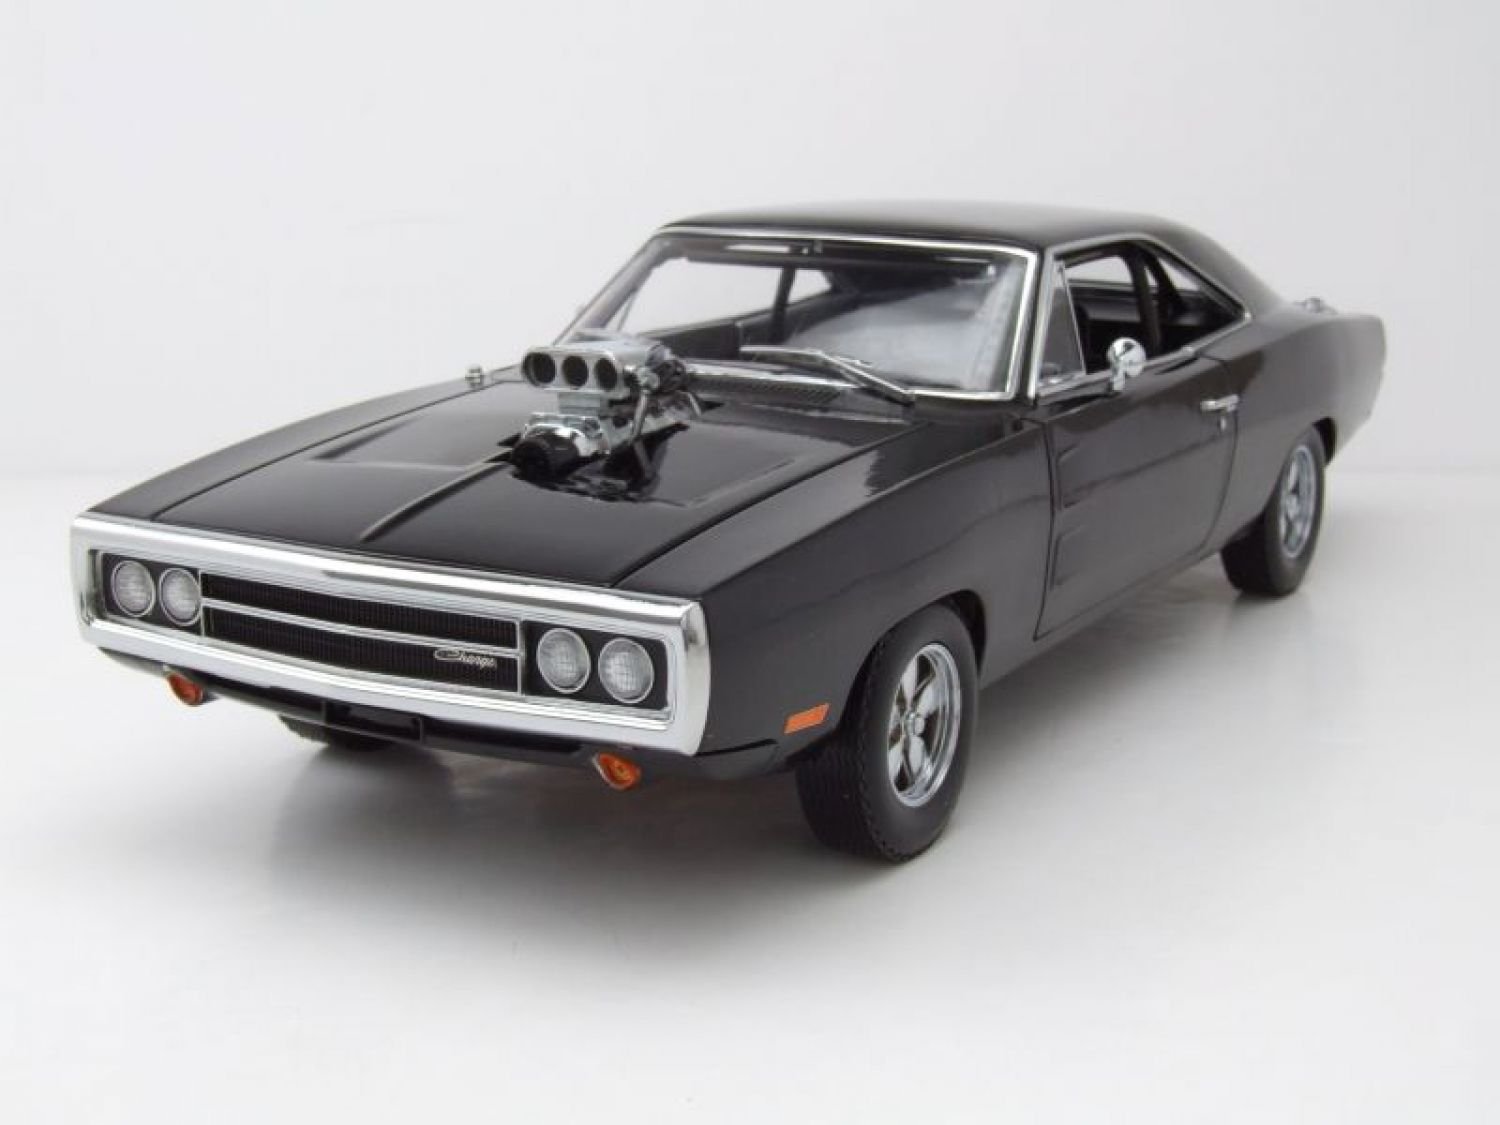 dodge charger r t 1970 schwarz fast furious modellauto. Black Bedroom Furniture Sets. Home Design Ideas